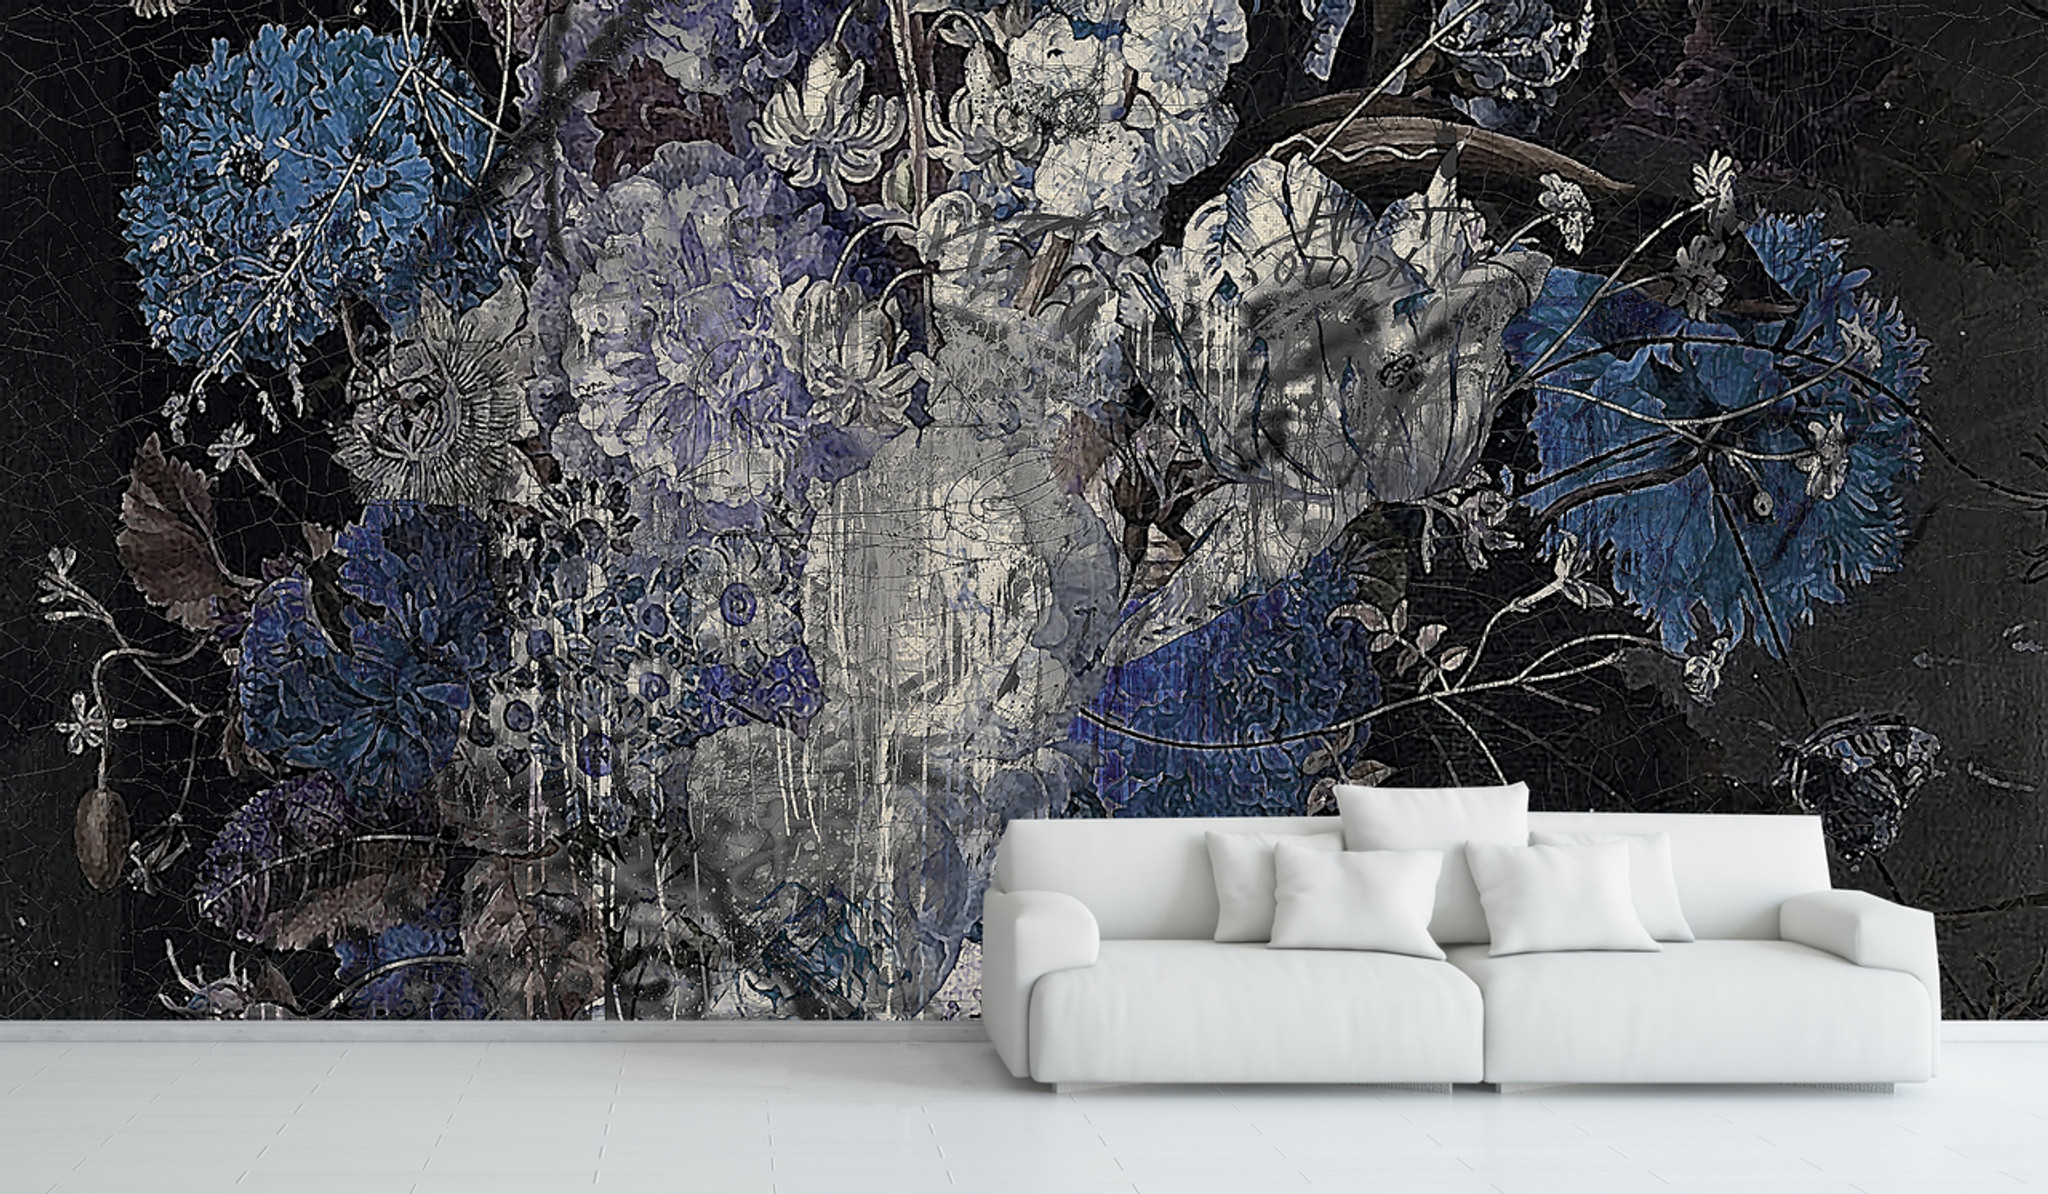 Wallpaper - Still Life with Flowers - Blue